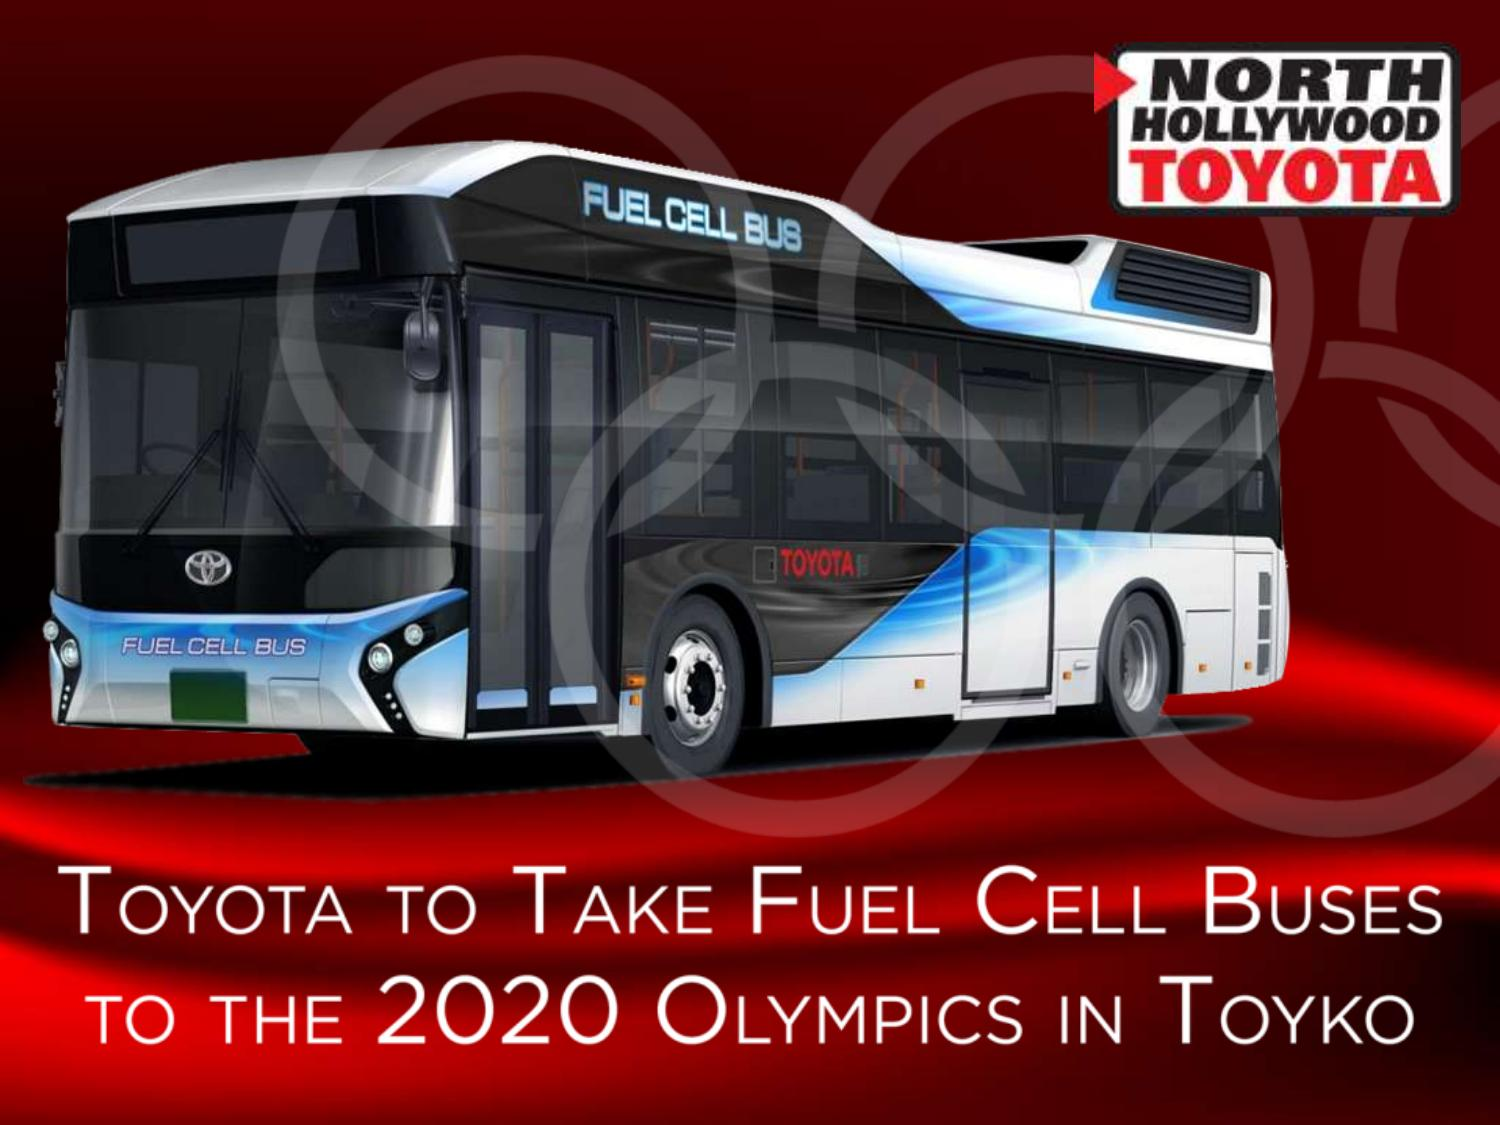 Toyota To Take Fuel Cell Buses To The 2020 Olympics In Toyko By North  Hollywood Toyota   Issuu